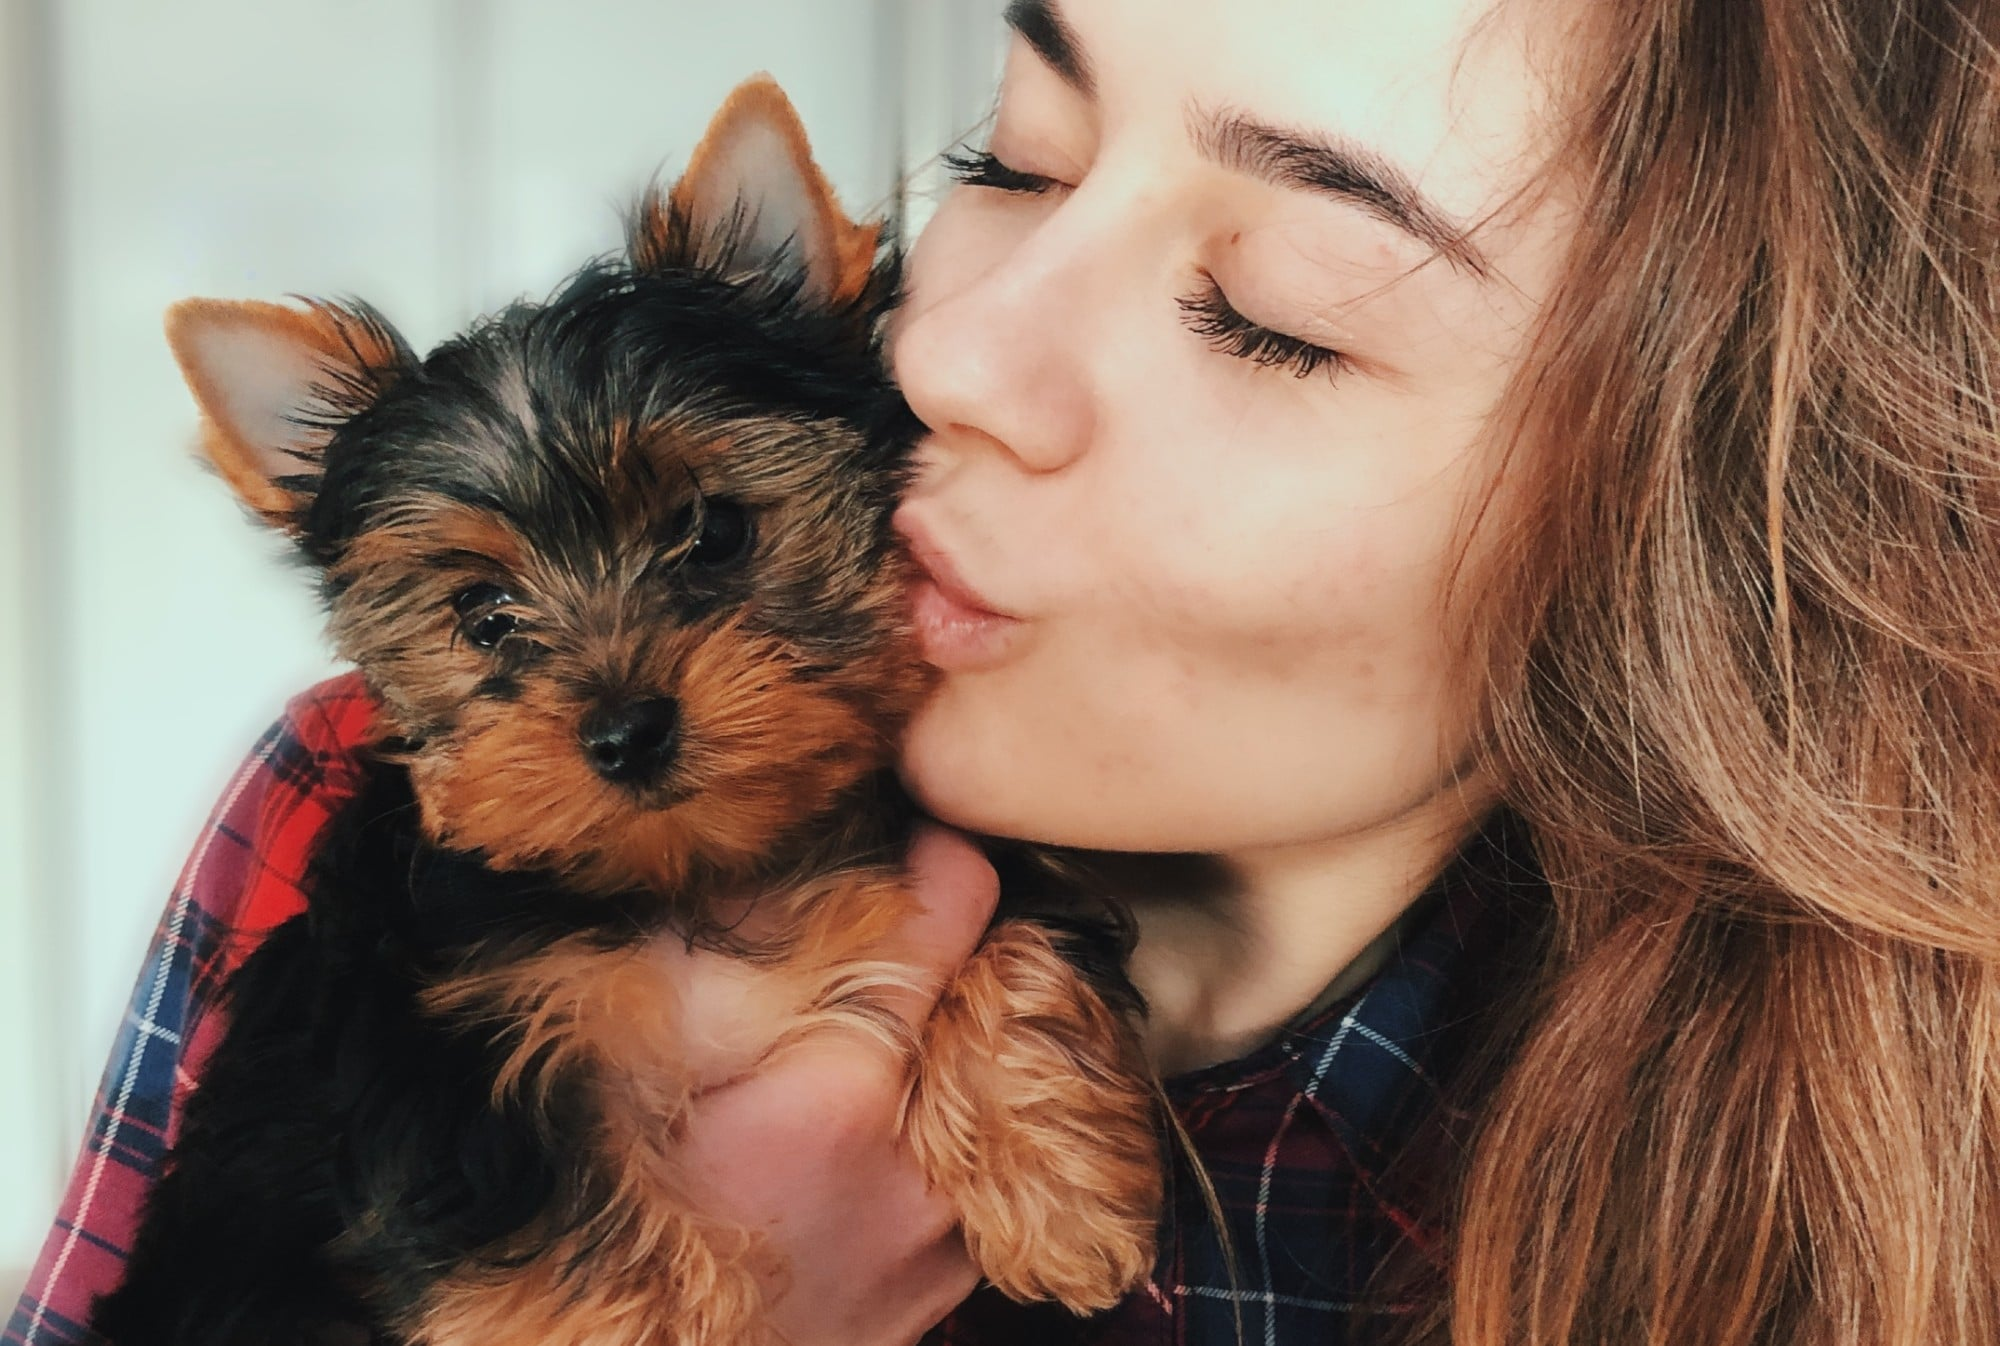 Celebrating National Dog Day With 10 Reasons Why Dogs Are the Best